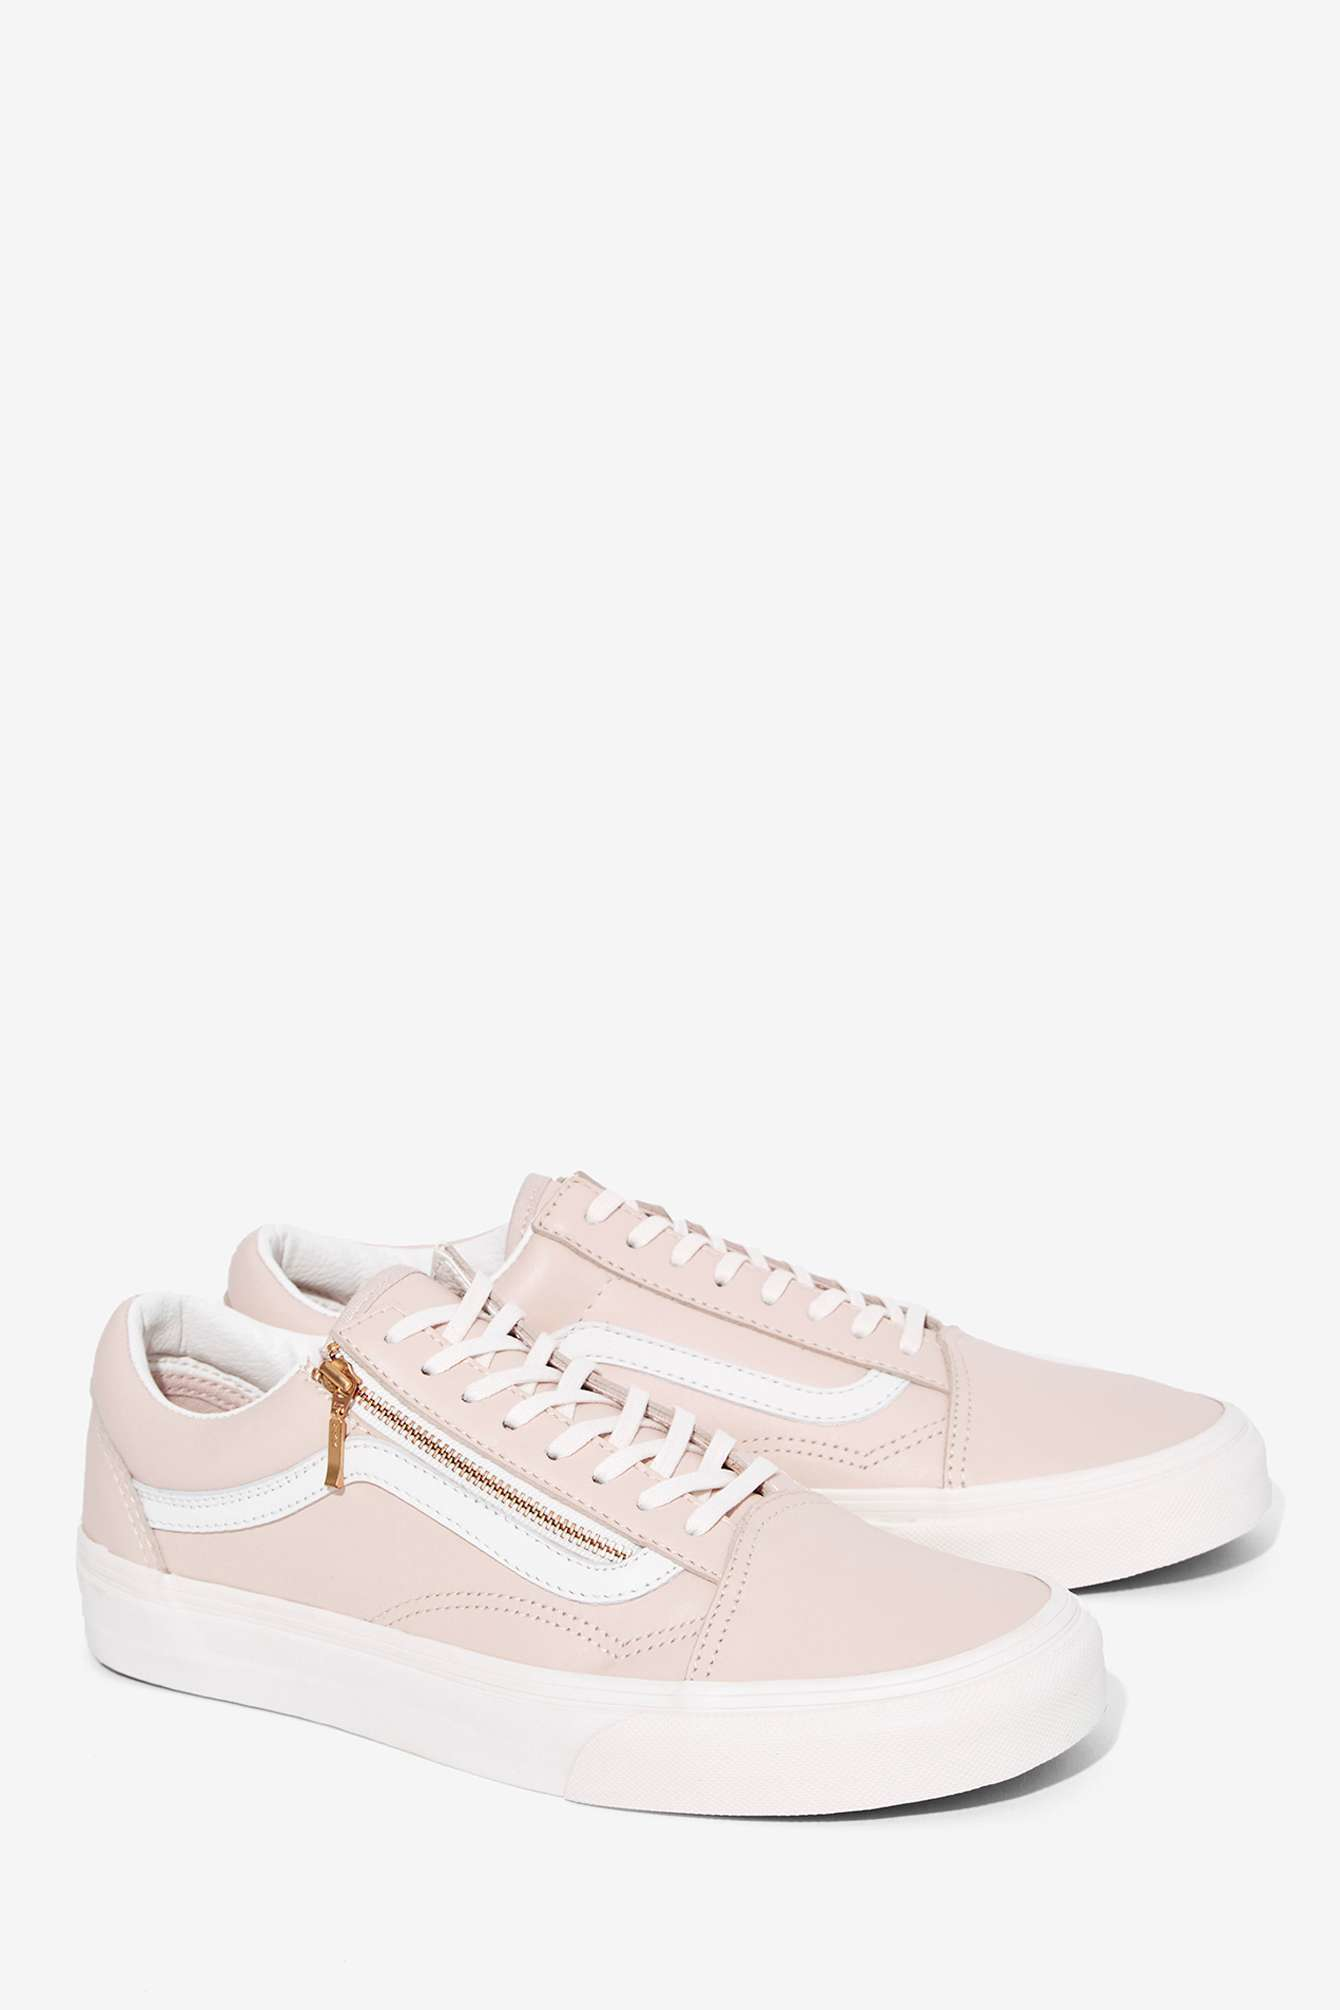 f0fe9e682e64 Lyst - Vans Old Skool Zip Leather Sneaker in Pink